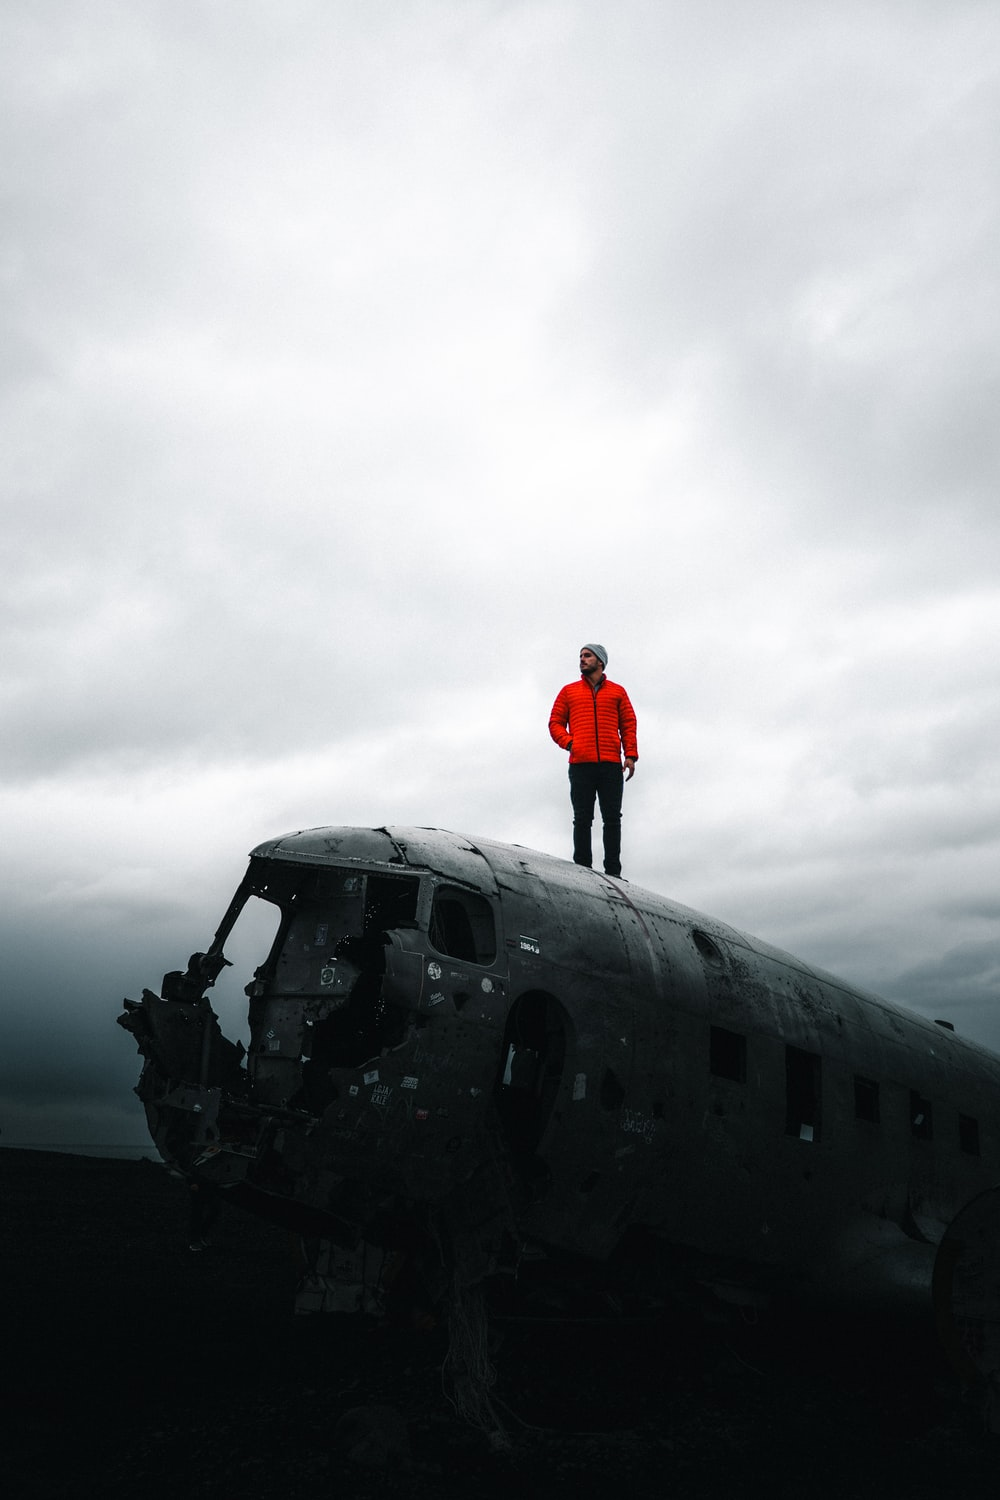 man in red jacket standing on black airplane under gray cloudy sky during daytime